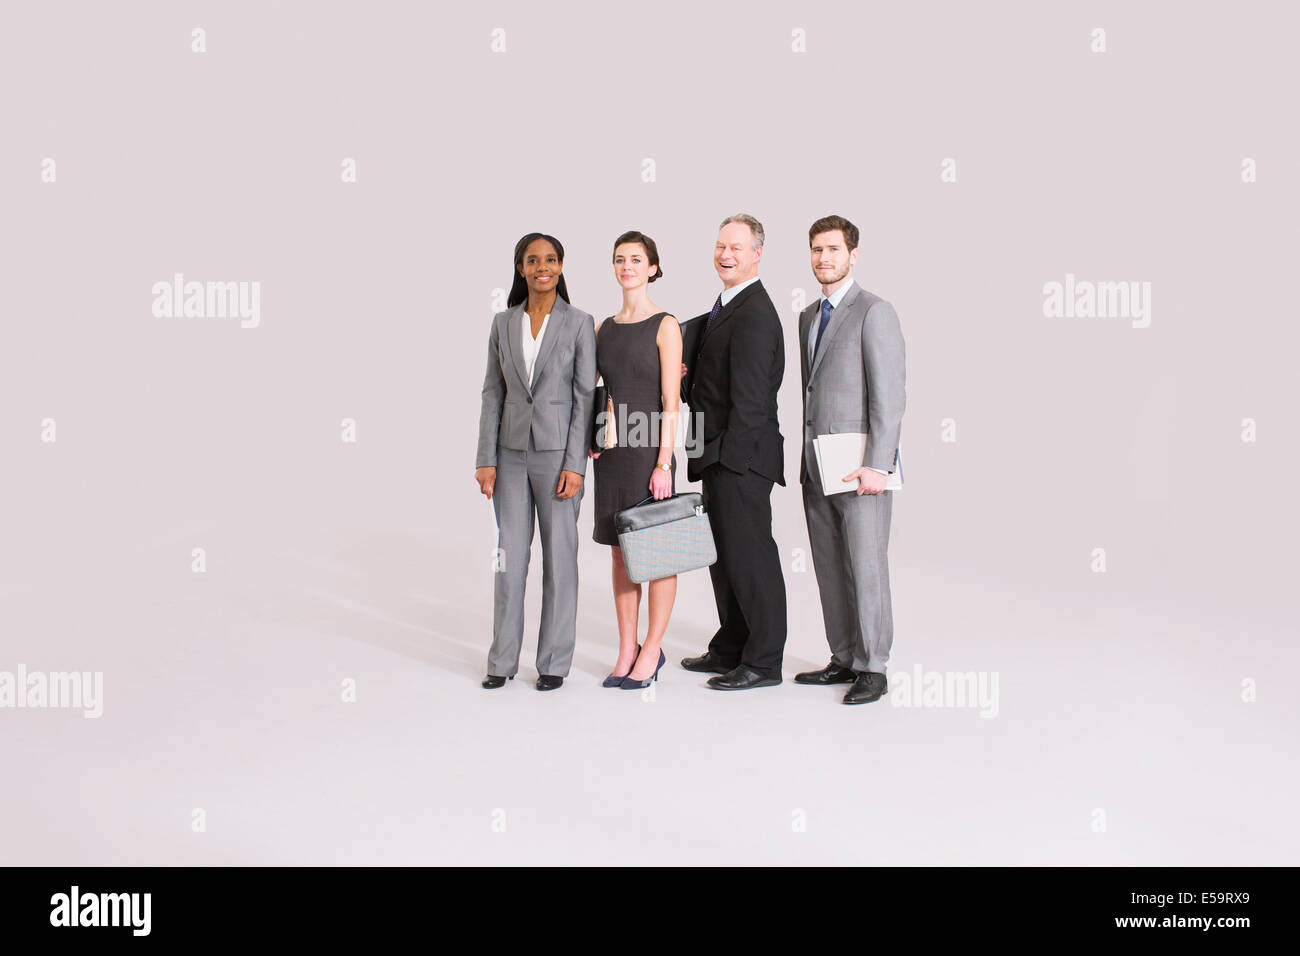 Portrait of business people Photo Stock